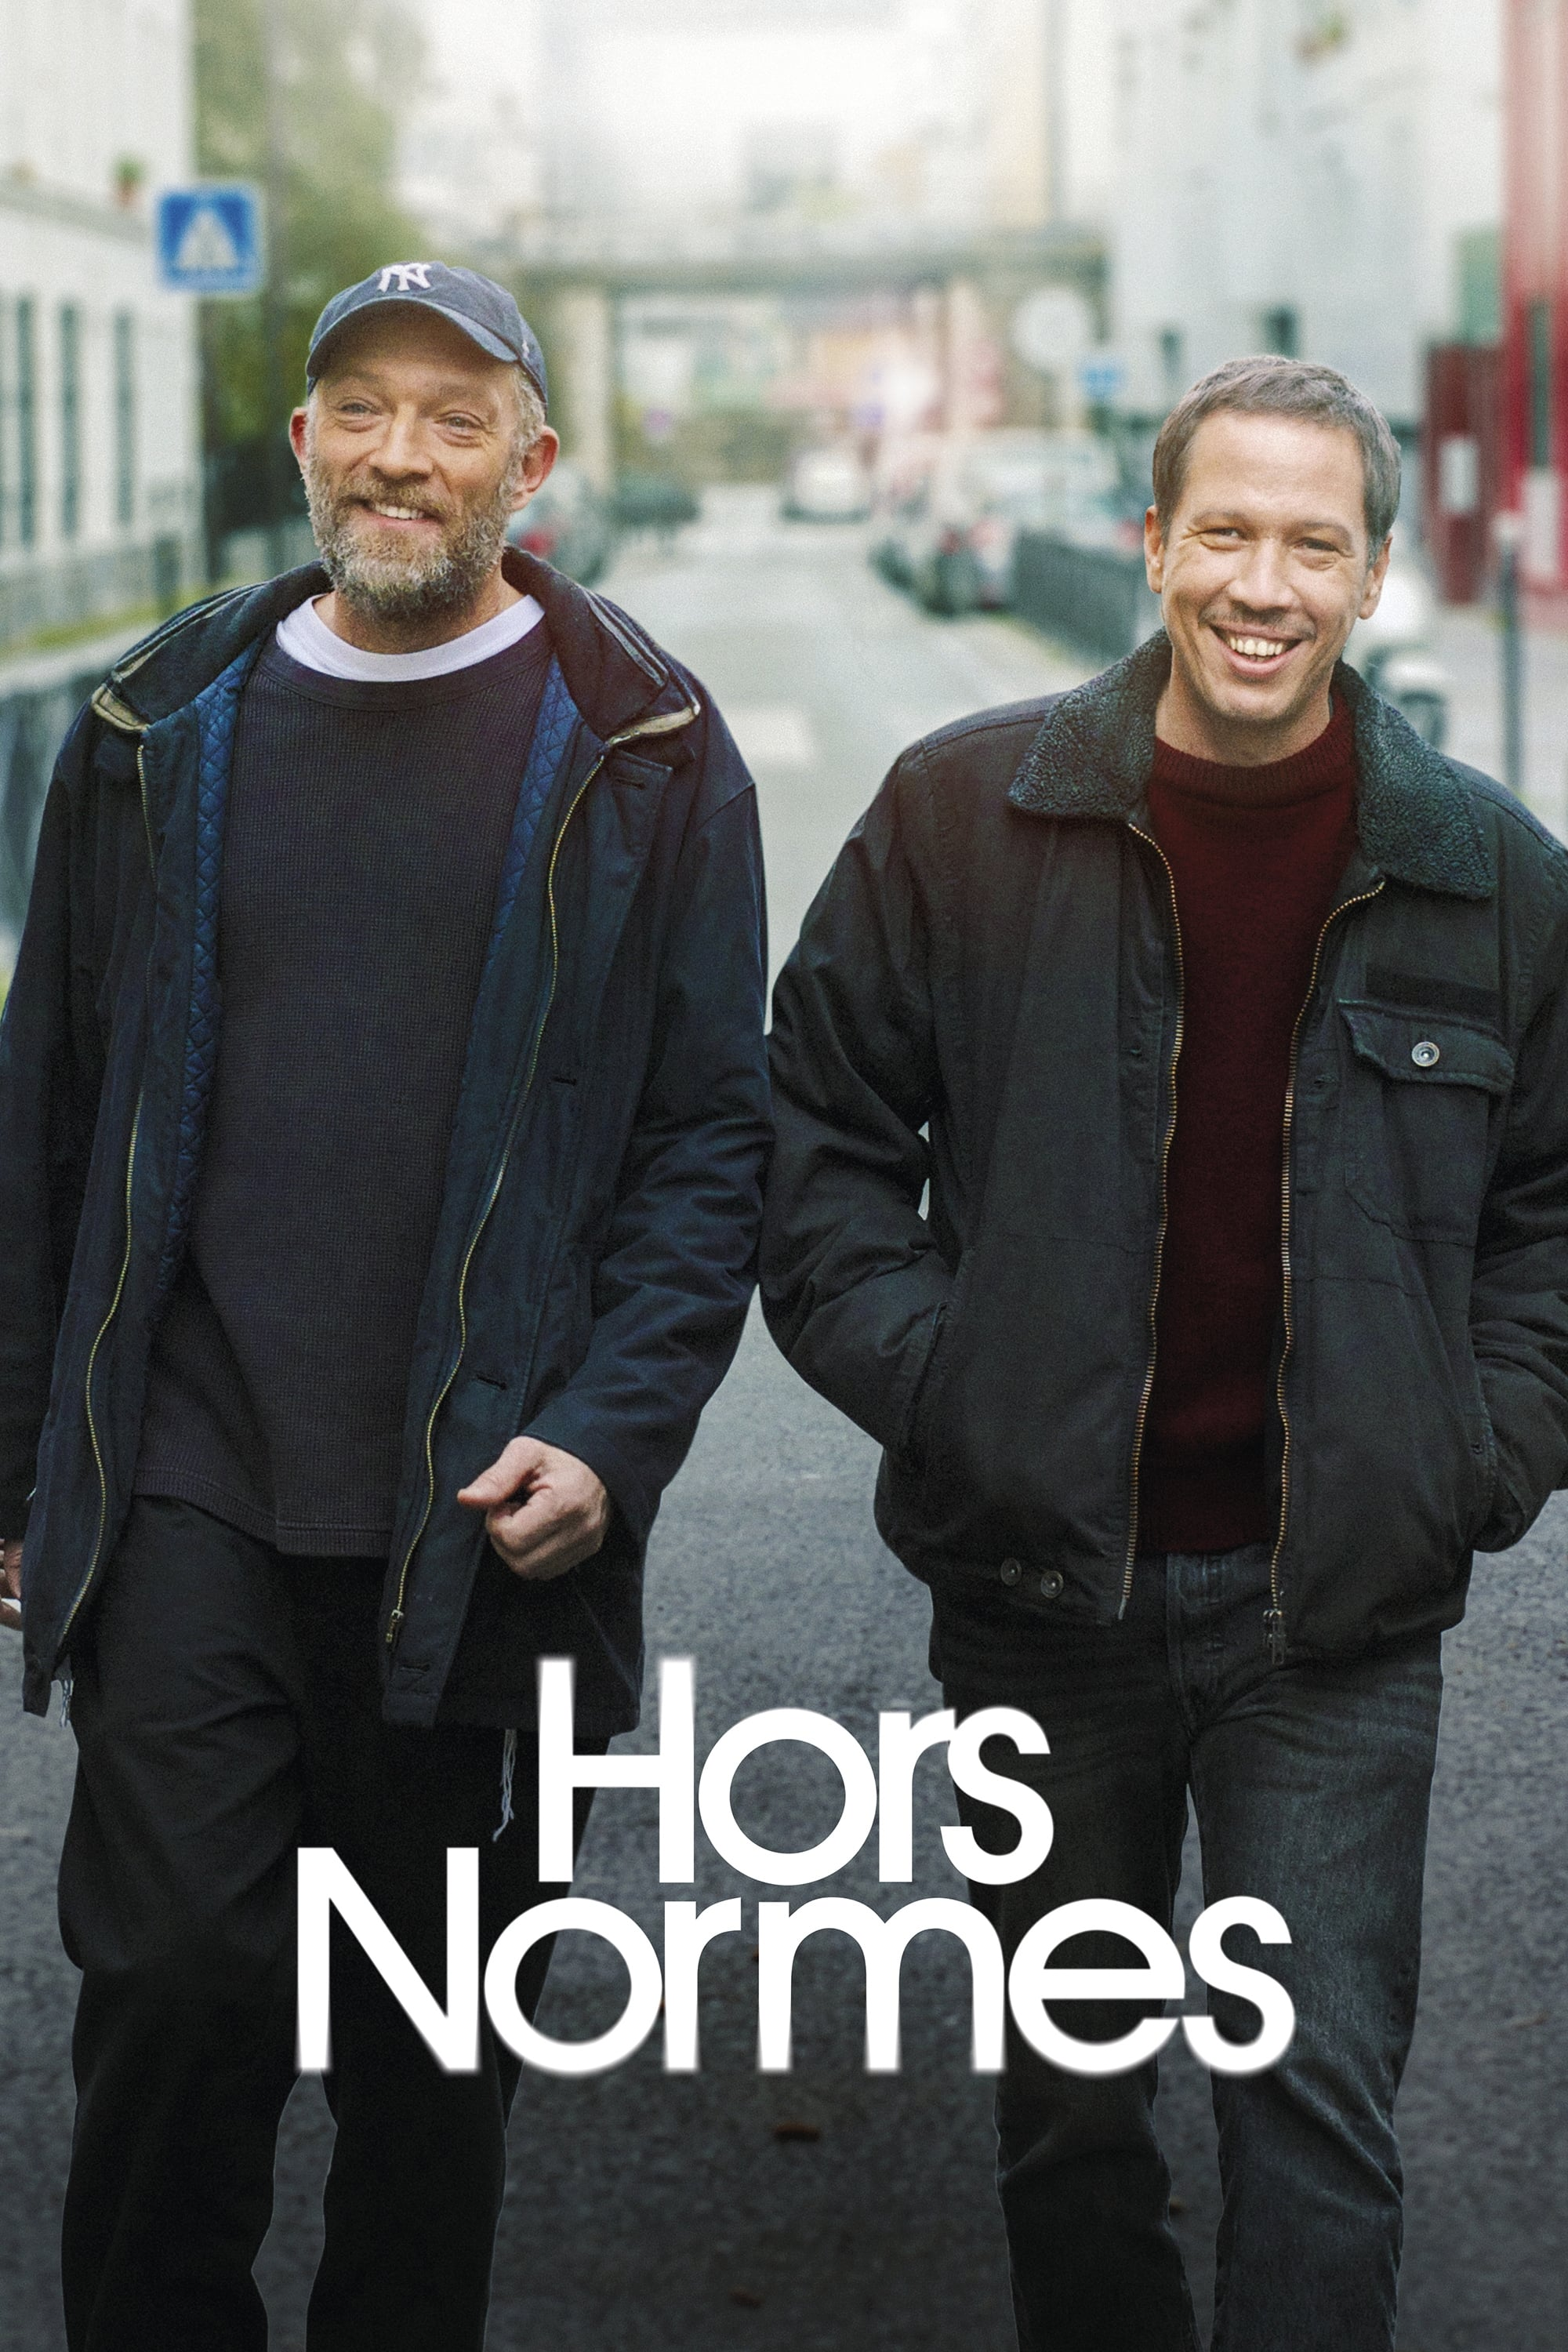 Hors Normes streaming sur zone telechargement